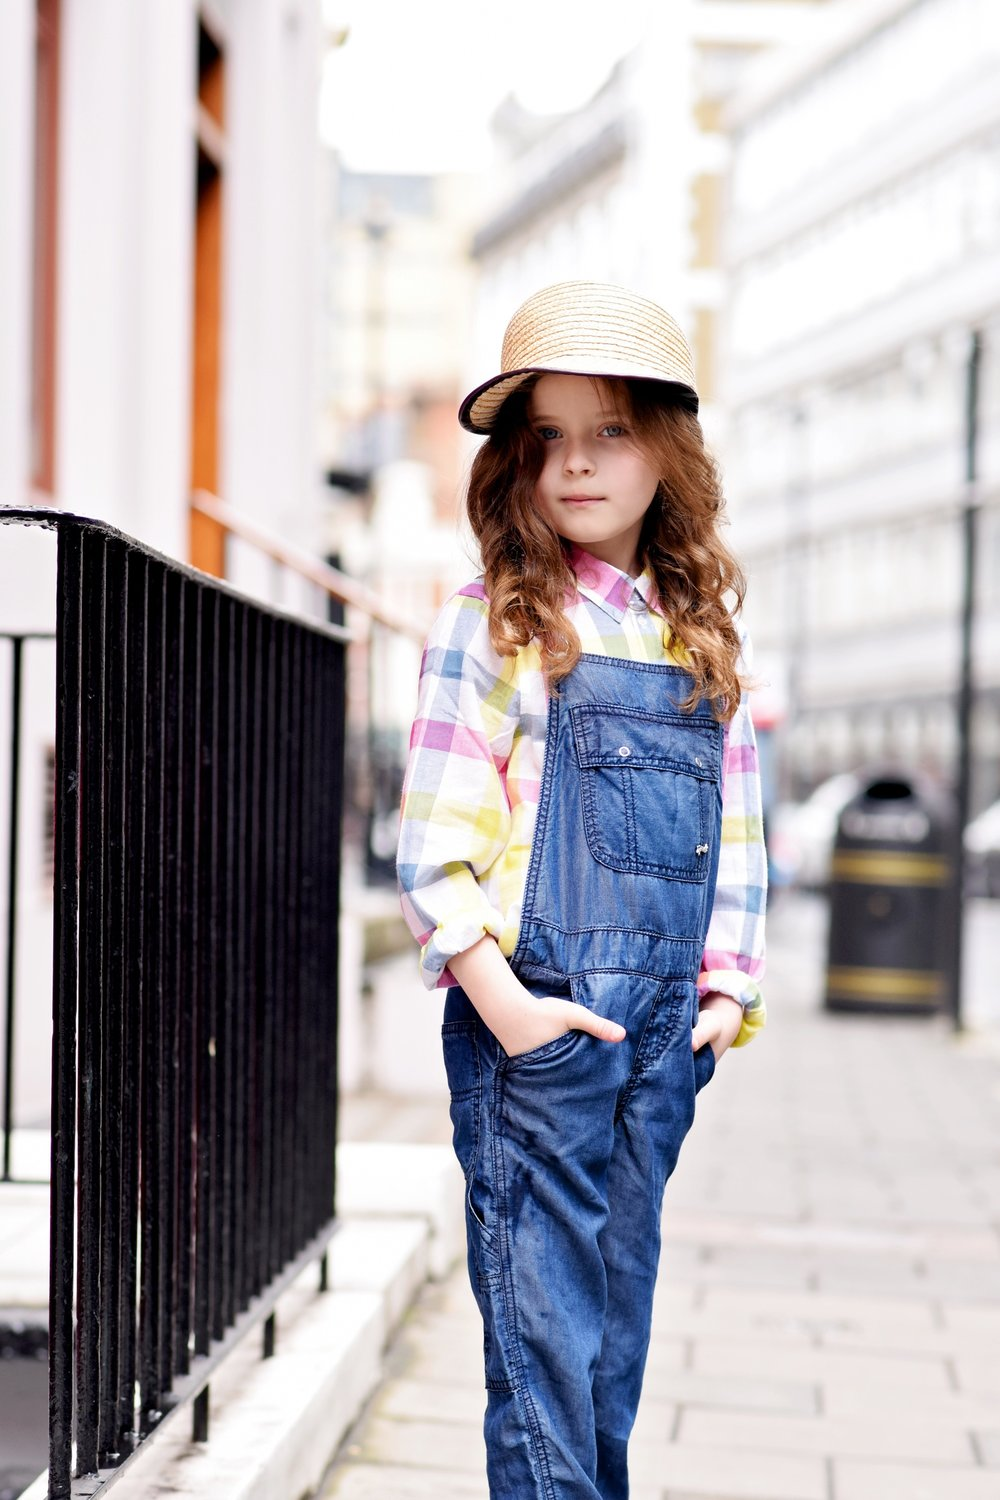 Enfant+Street+Style+by+Gina+Kim+Photography-1.jpeg